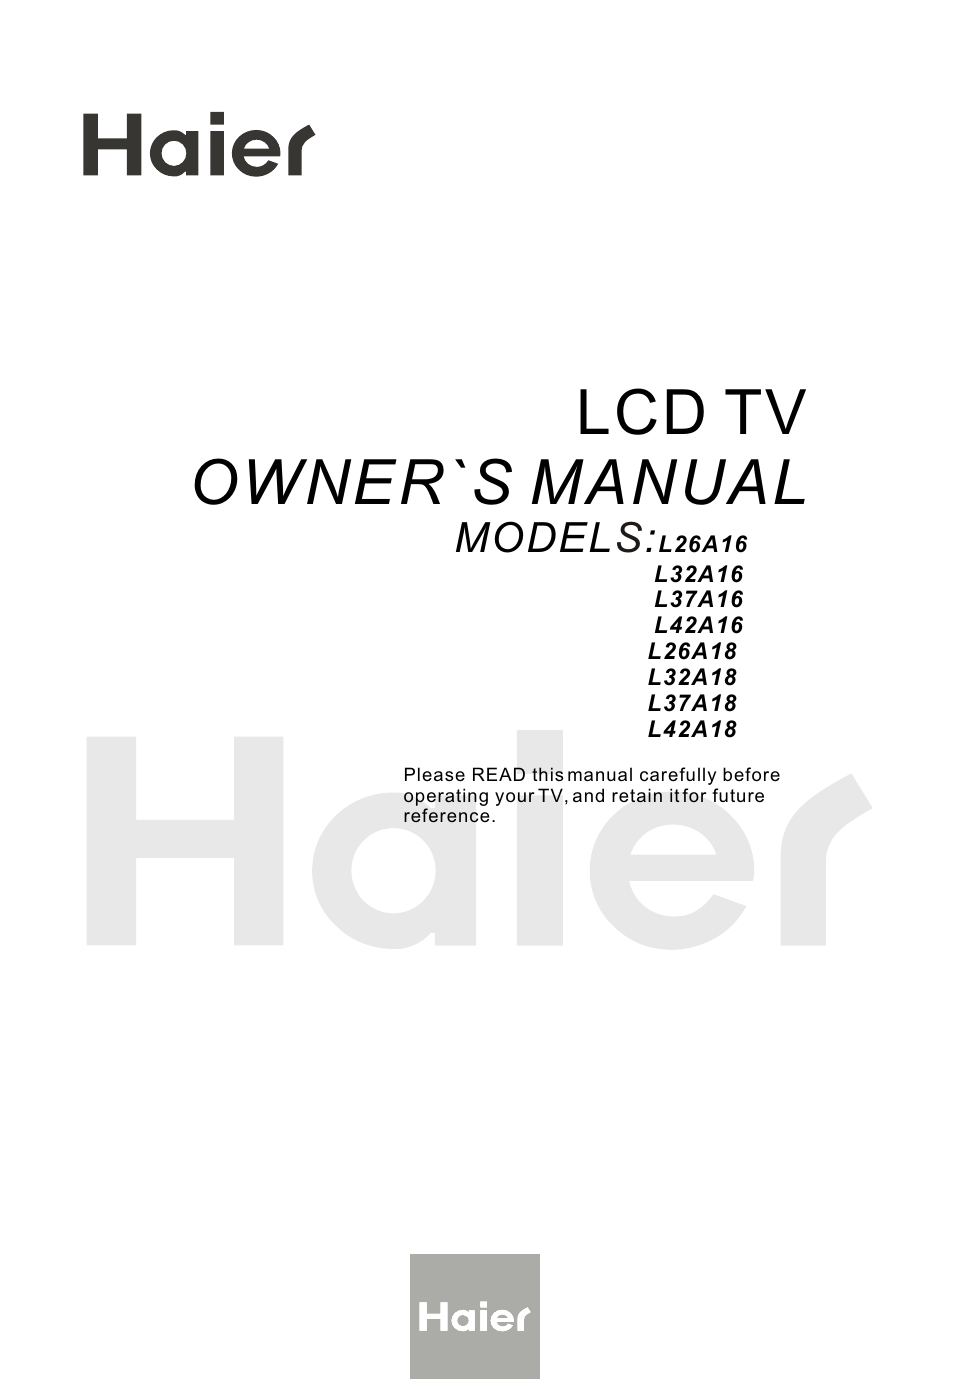 haier L26A16 User Manual | 38 pages | Also for: L32A16, L37A16, L42A16,  L26A18, L32A18, L37A18, L42A18